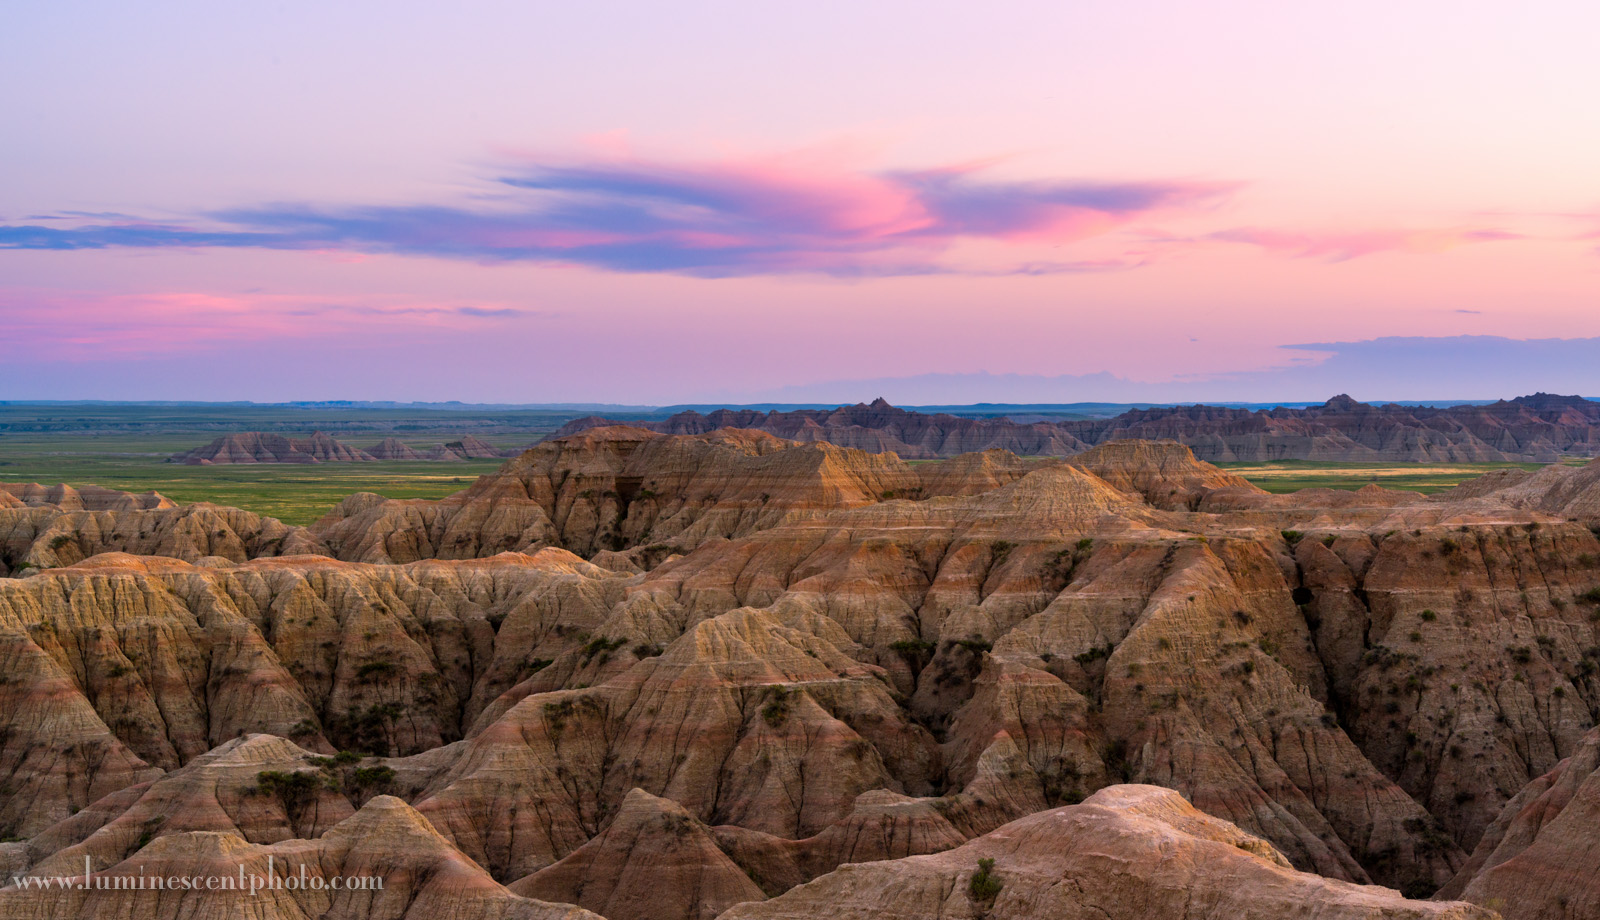 Last light in Badlands National Park, South Dakota. Nikon D800e with 70-200mm f/2.8 AFS G VRII Nikkor zoom. 1/8s @f/11, ISO 400